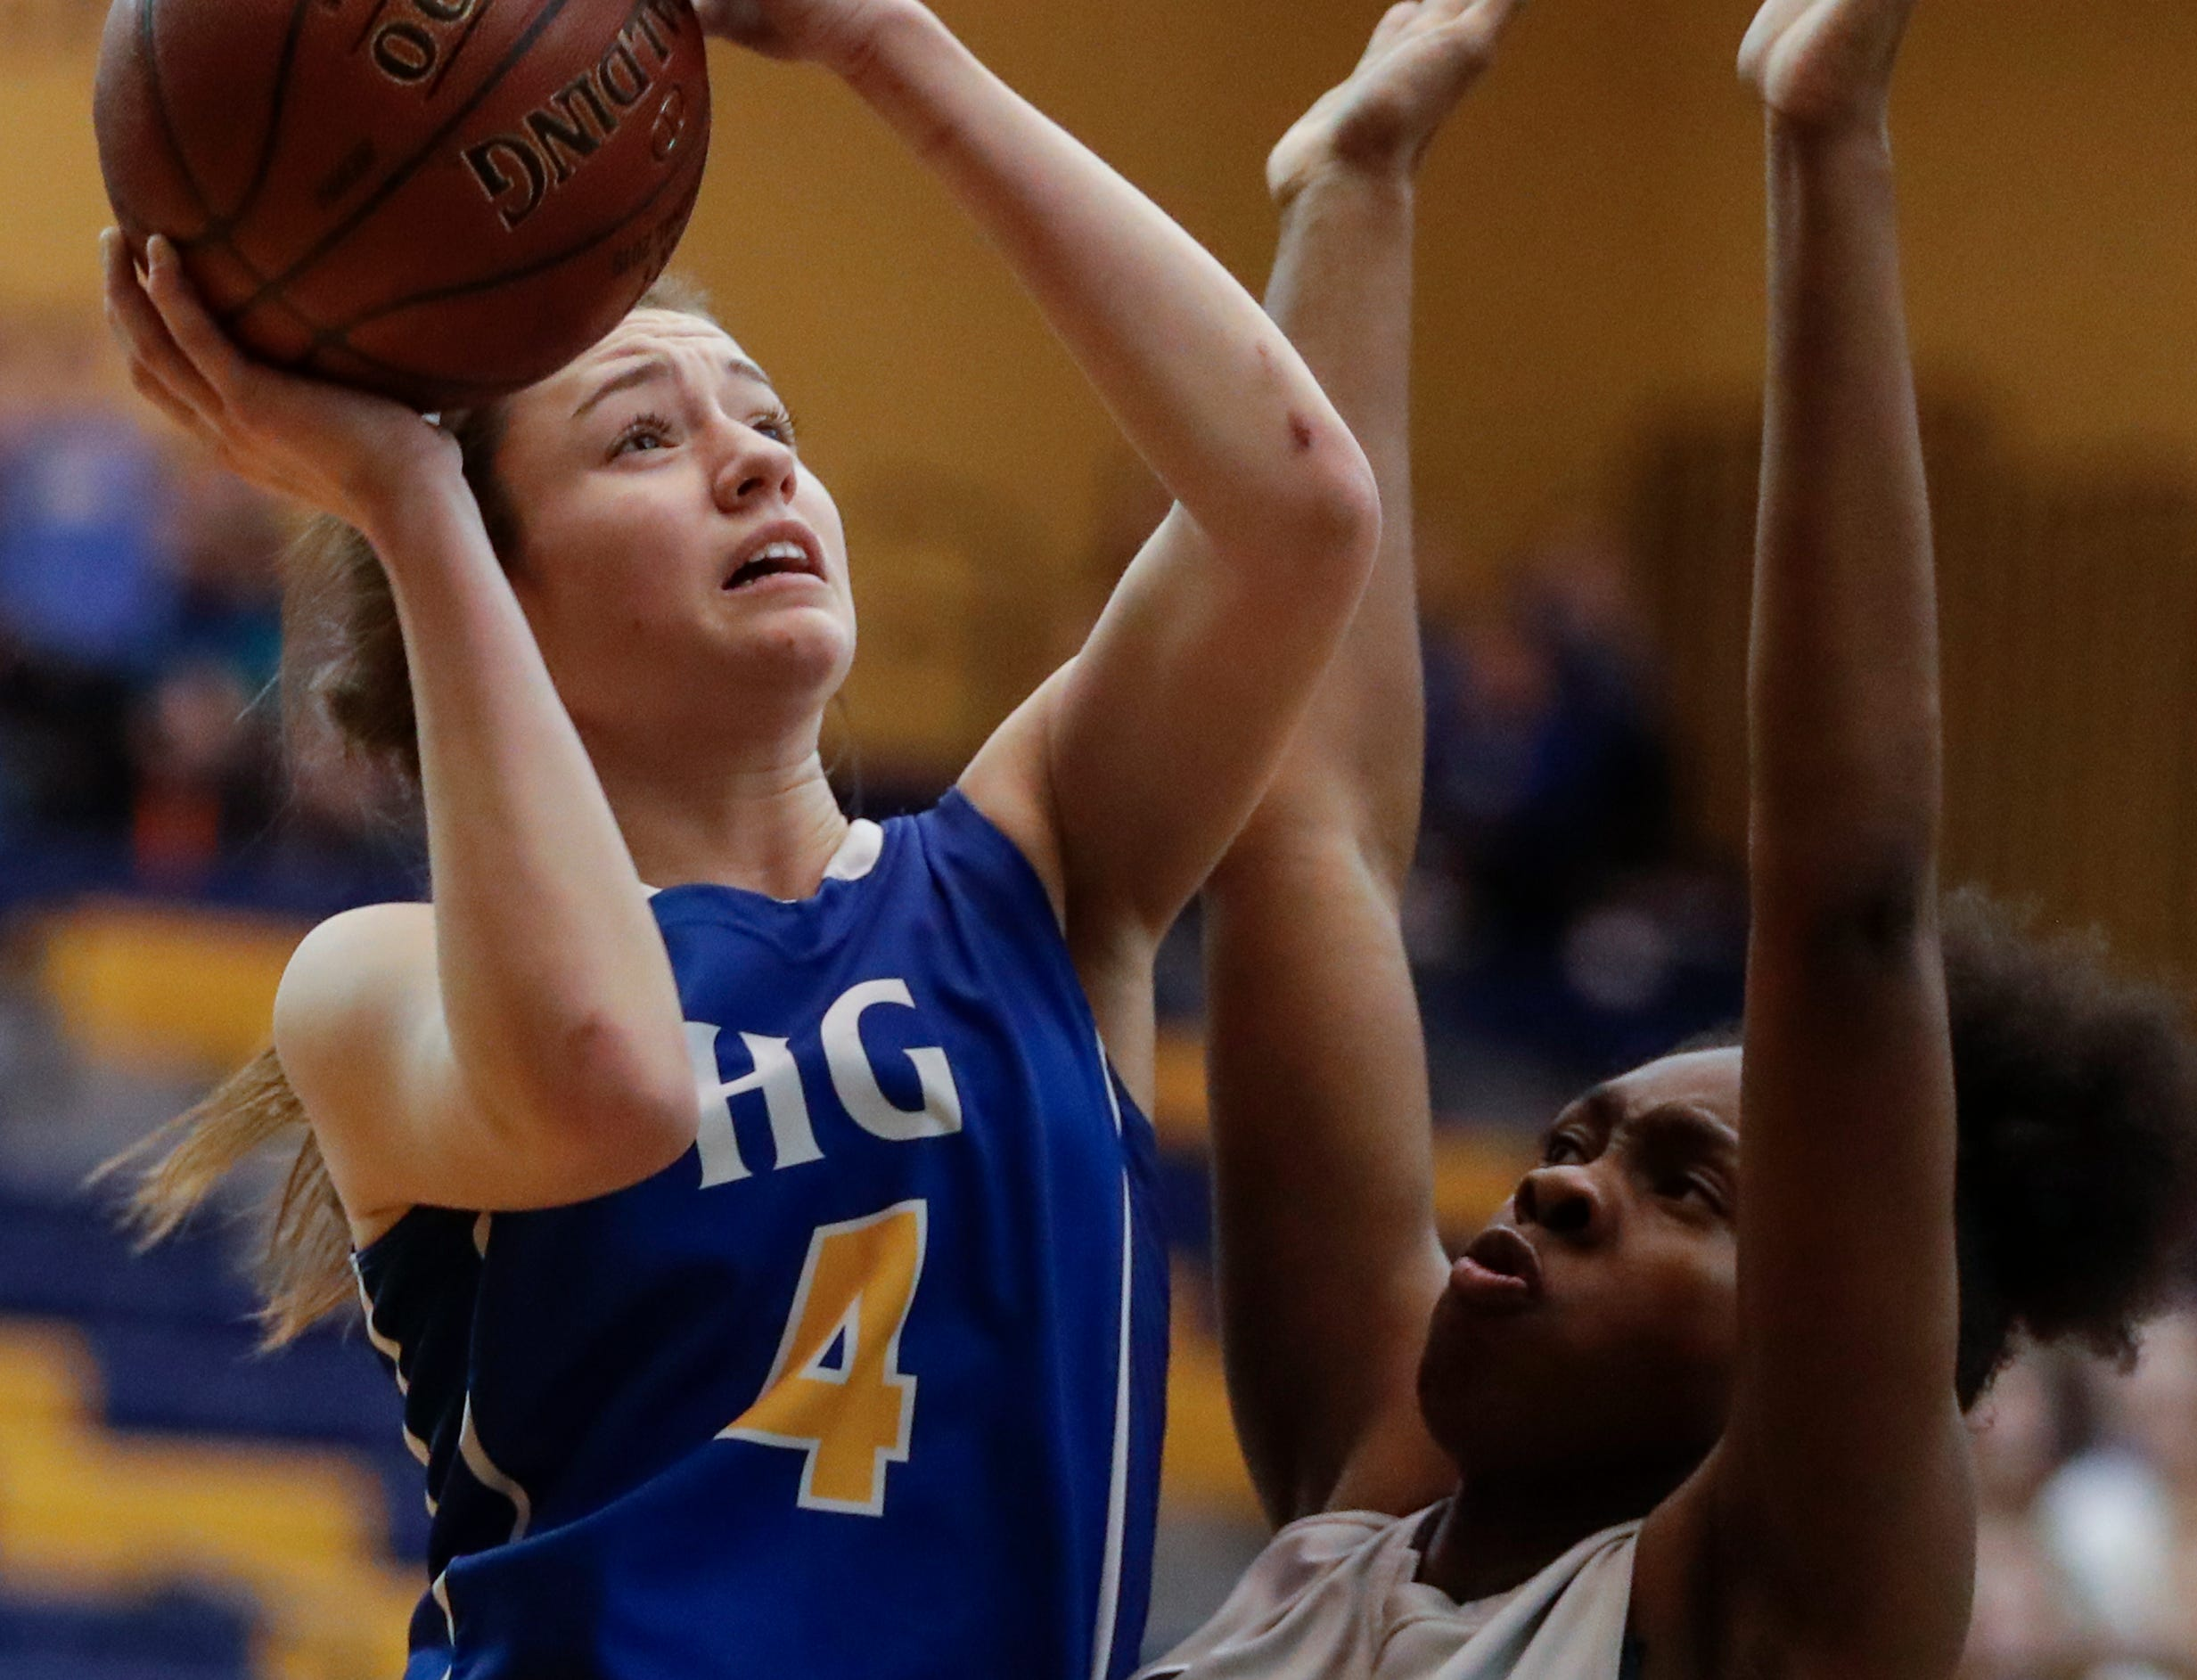 Howards Grove's Mackenzie Holzwart (4) shoots against Milwaukee Academy of Science's Jalisa Batemon (5) during a WIAA Division 4 sectional championship game at Sheboygan North High School Saturday, March 2, 2019, in Sheboygan, Wis. Joshua Clark/USA TODAY NETWORK-Wisconsin